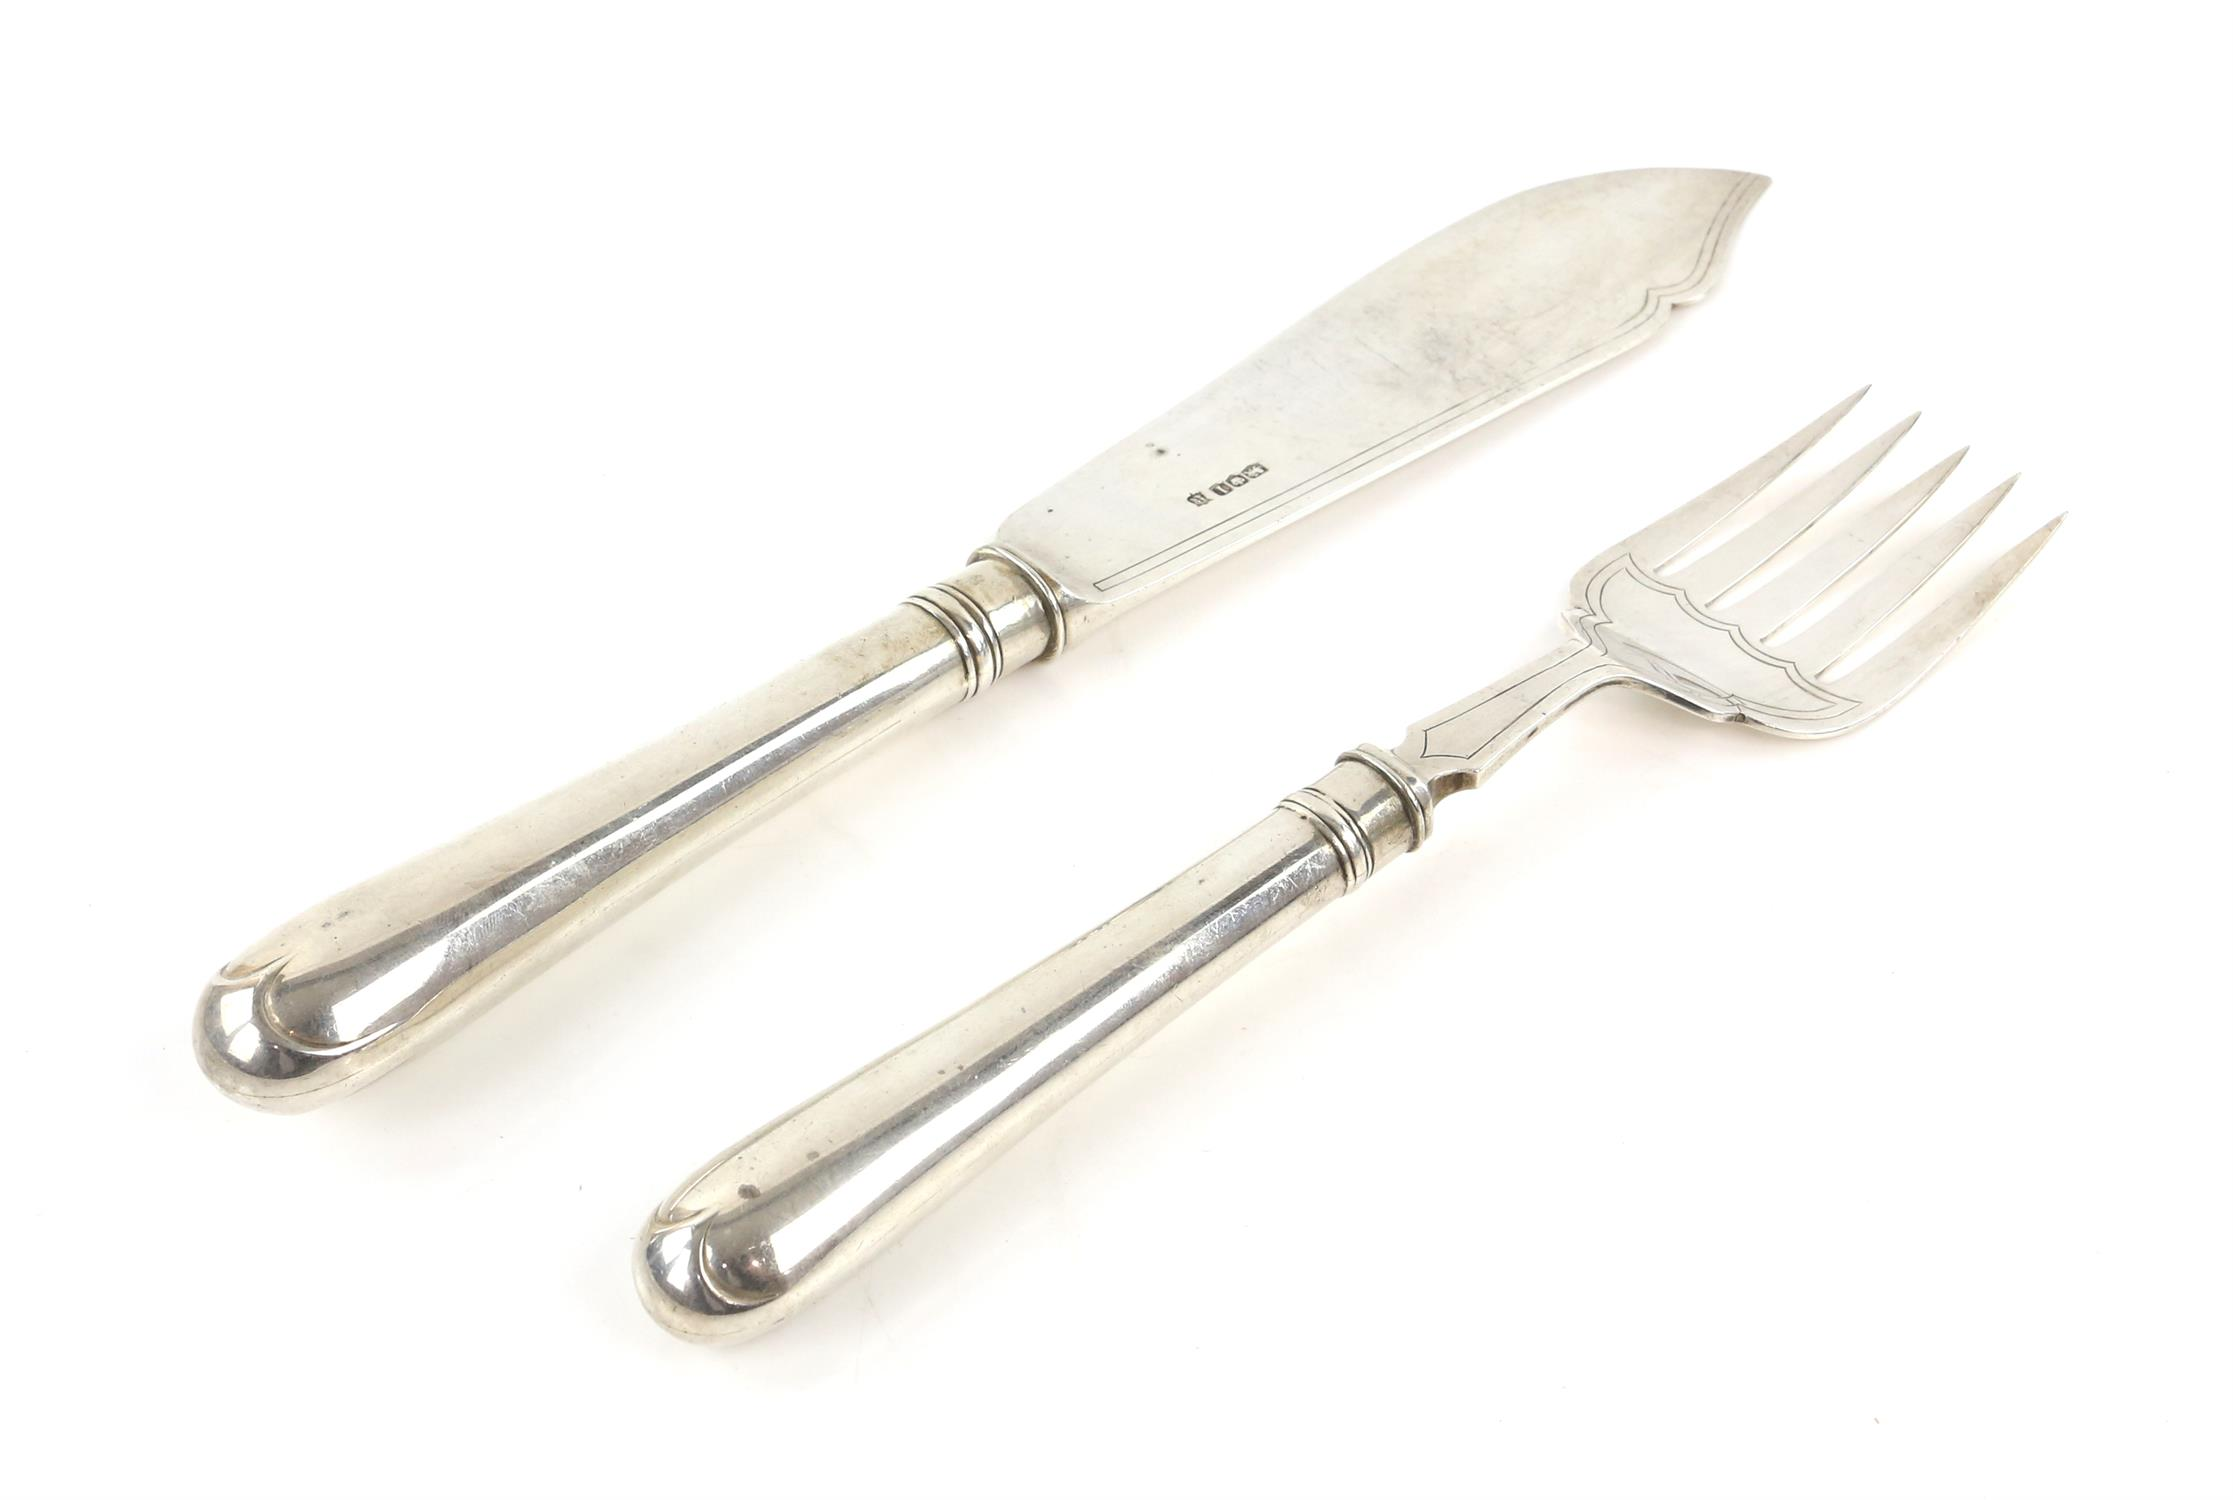 Two silver fish servers, including a knife and fork, Thomas Bradbury & Sons, Sheffield 1928,